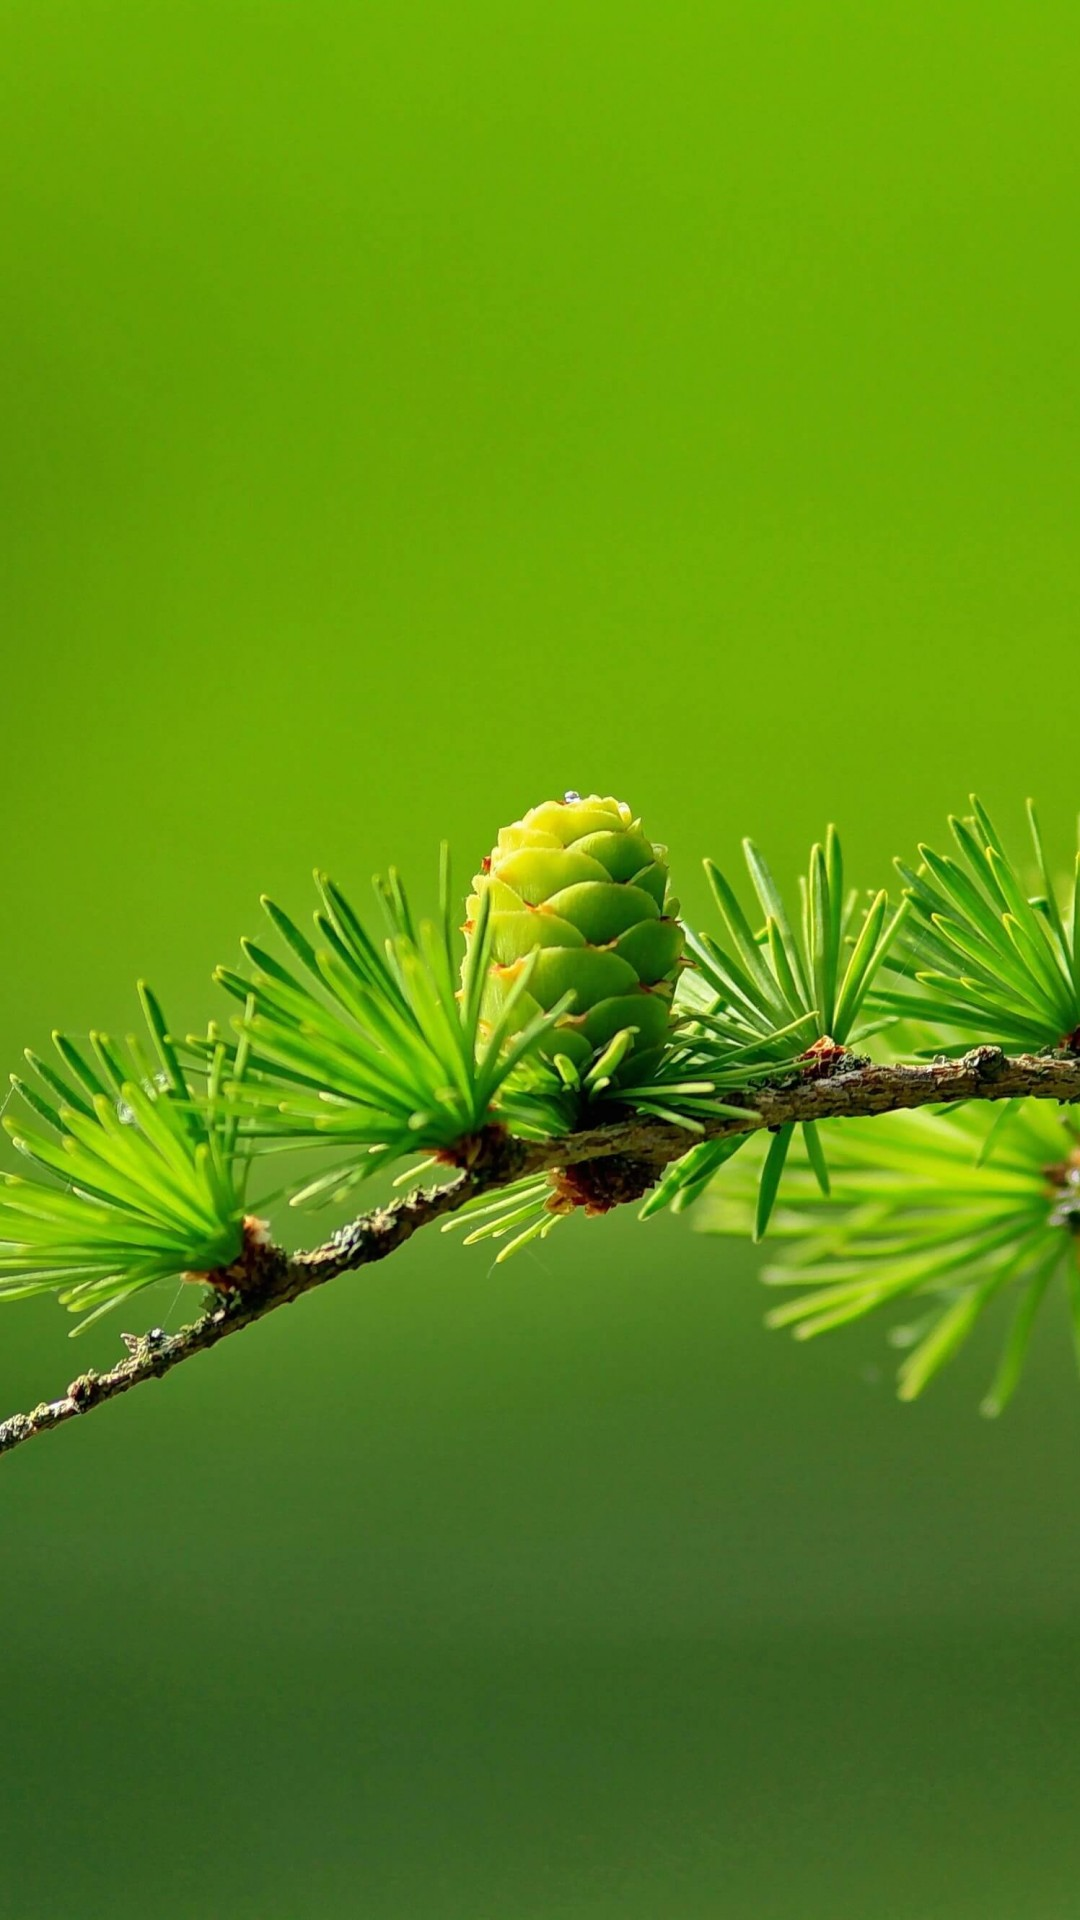 Branch of Pine Tree Wallpaper for HTC One